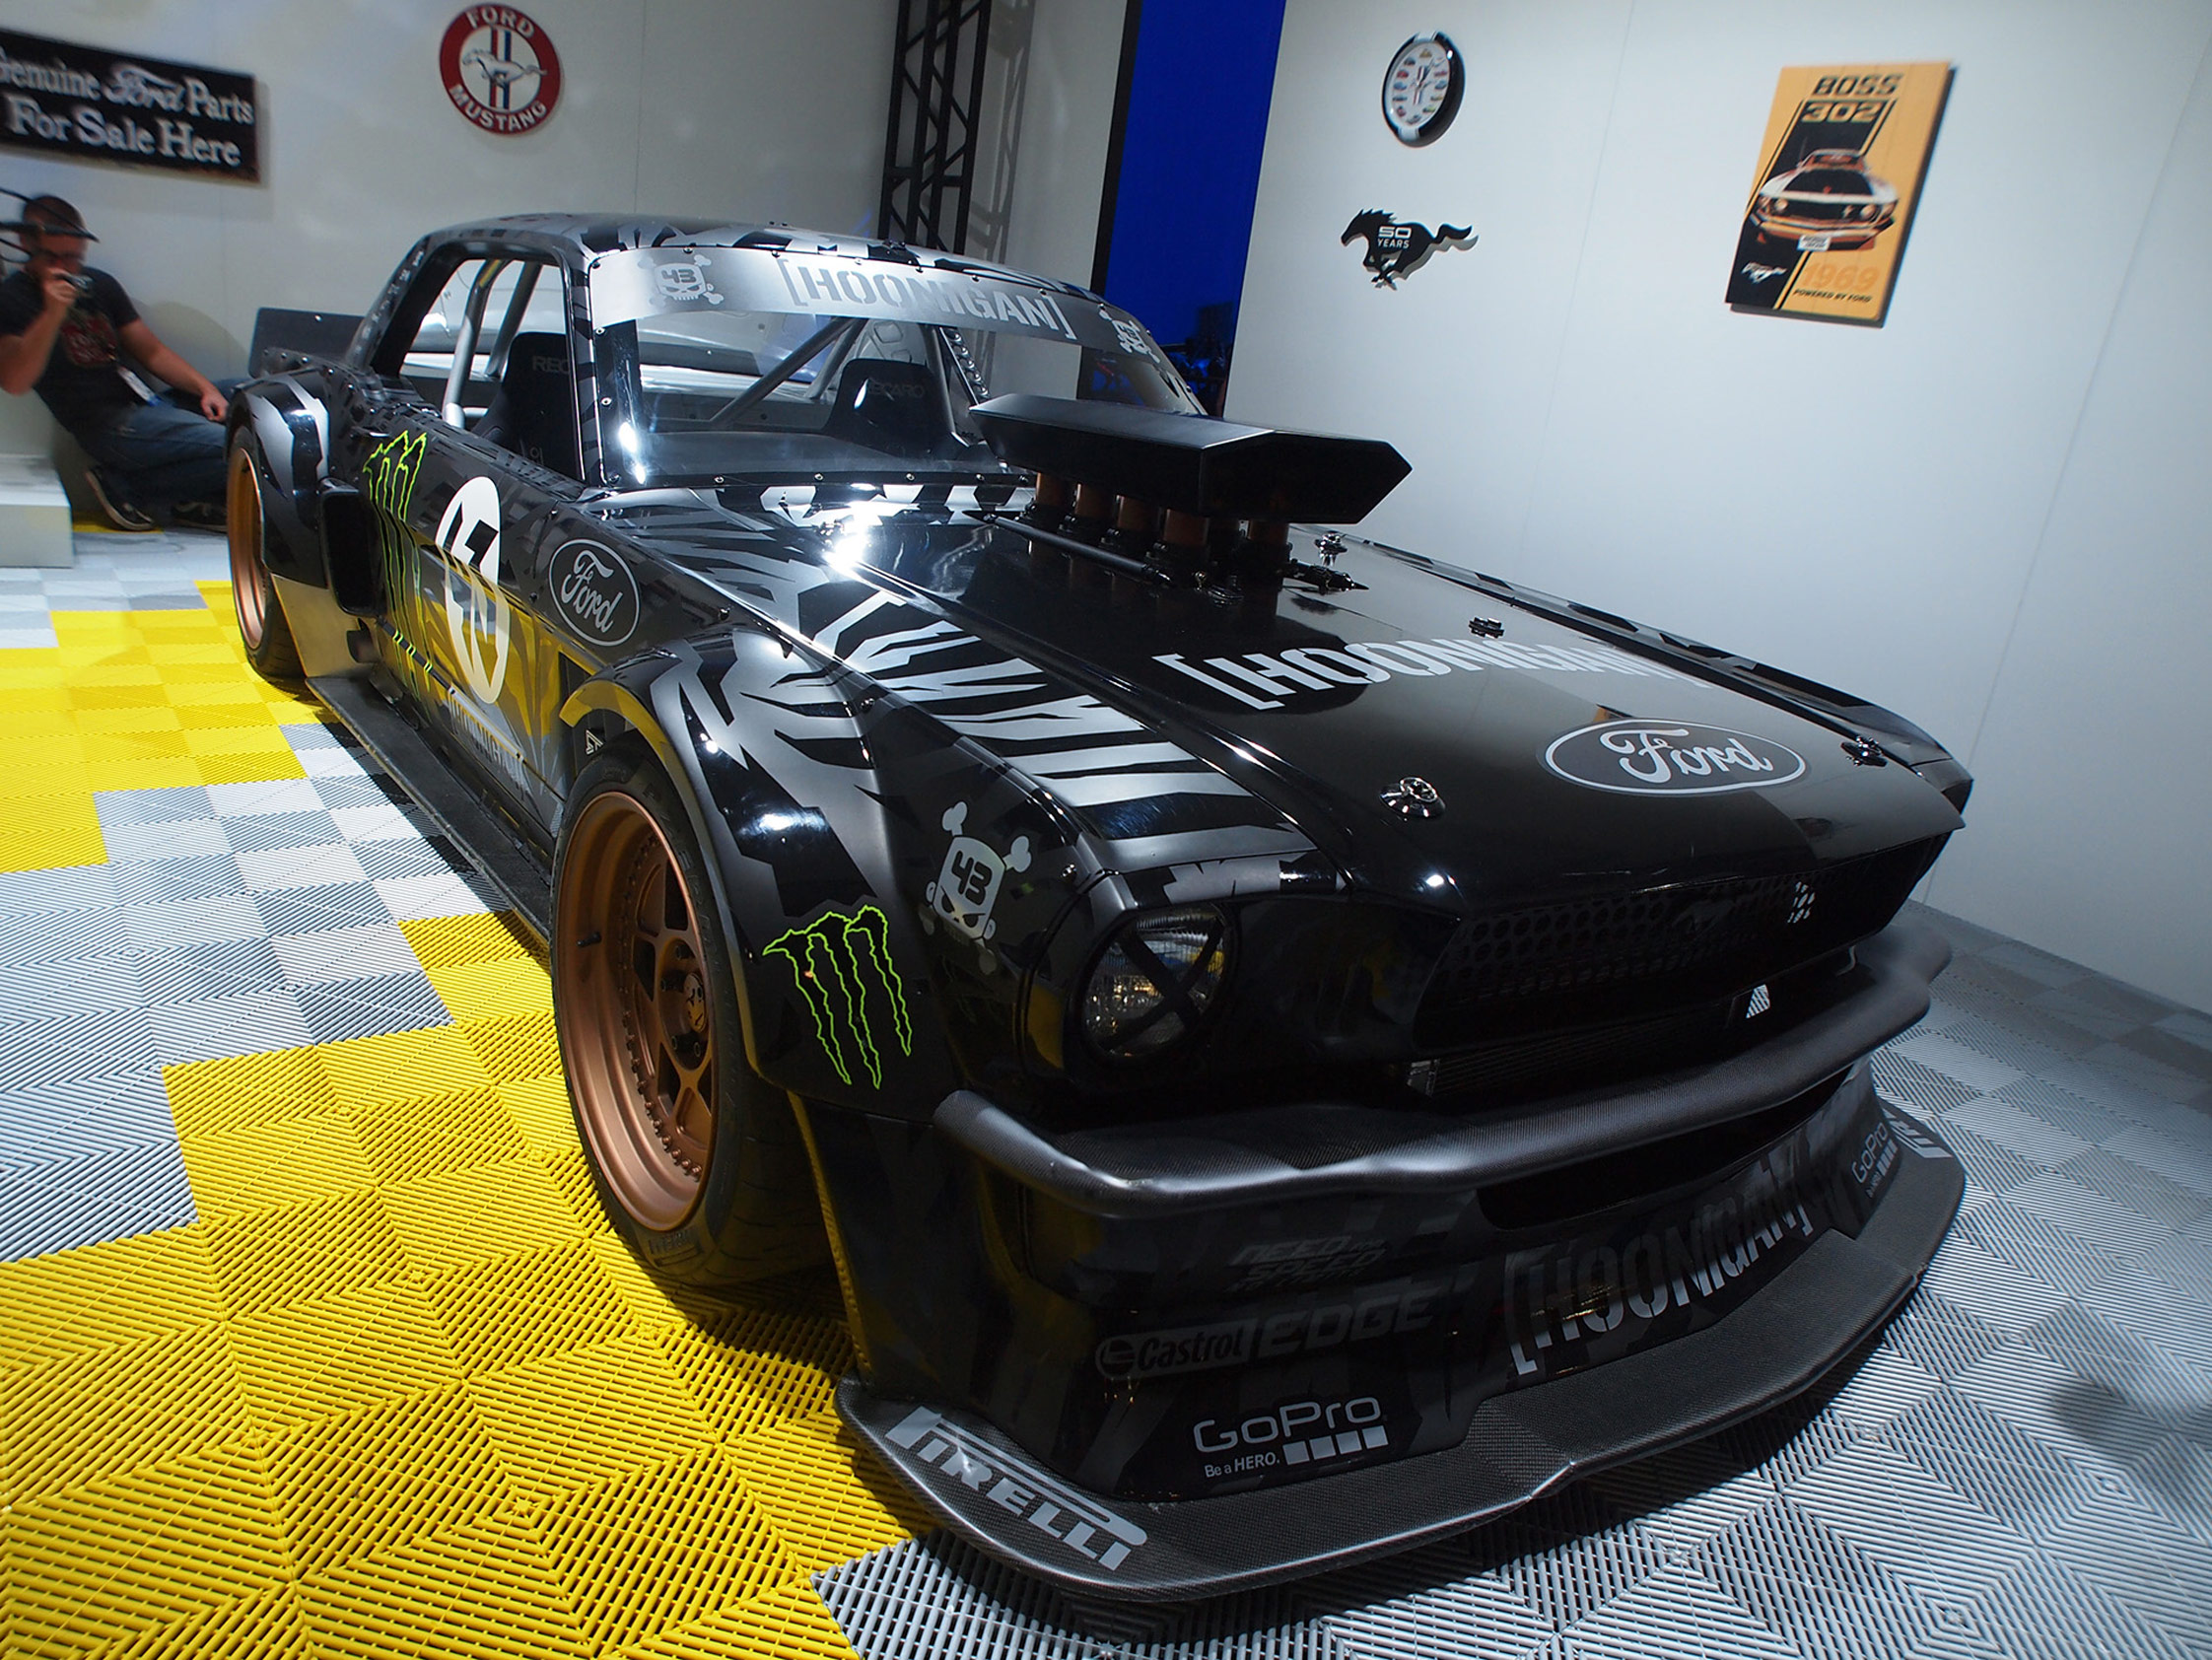 la ford mustang de ken block sema show 2014 diaporama photo. Black Bedroom Furniture Sets. Home Design Ideas